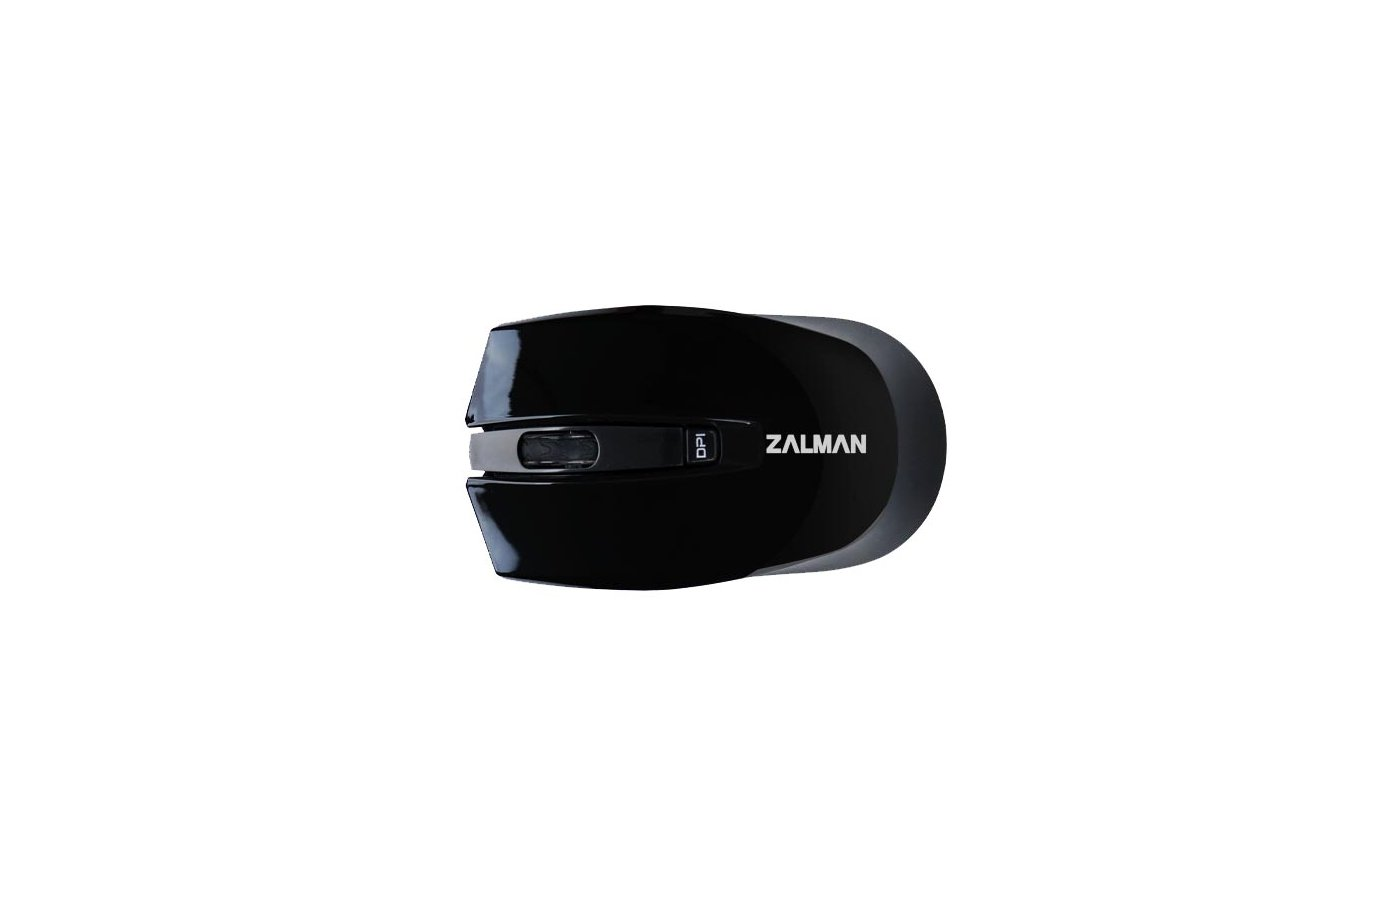 Мышь беспроводная Zalman ZM-M520W USB 1600dpi 2.4Ghz Wireless Avago A3000 sensor black